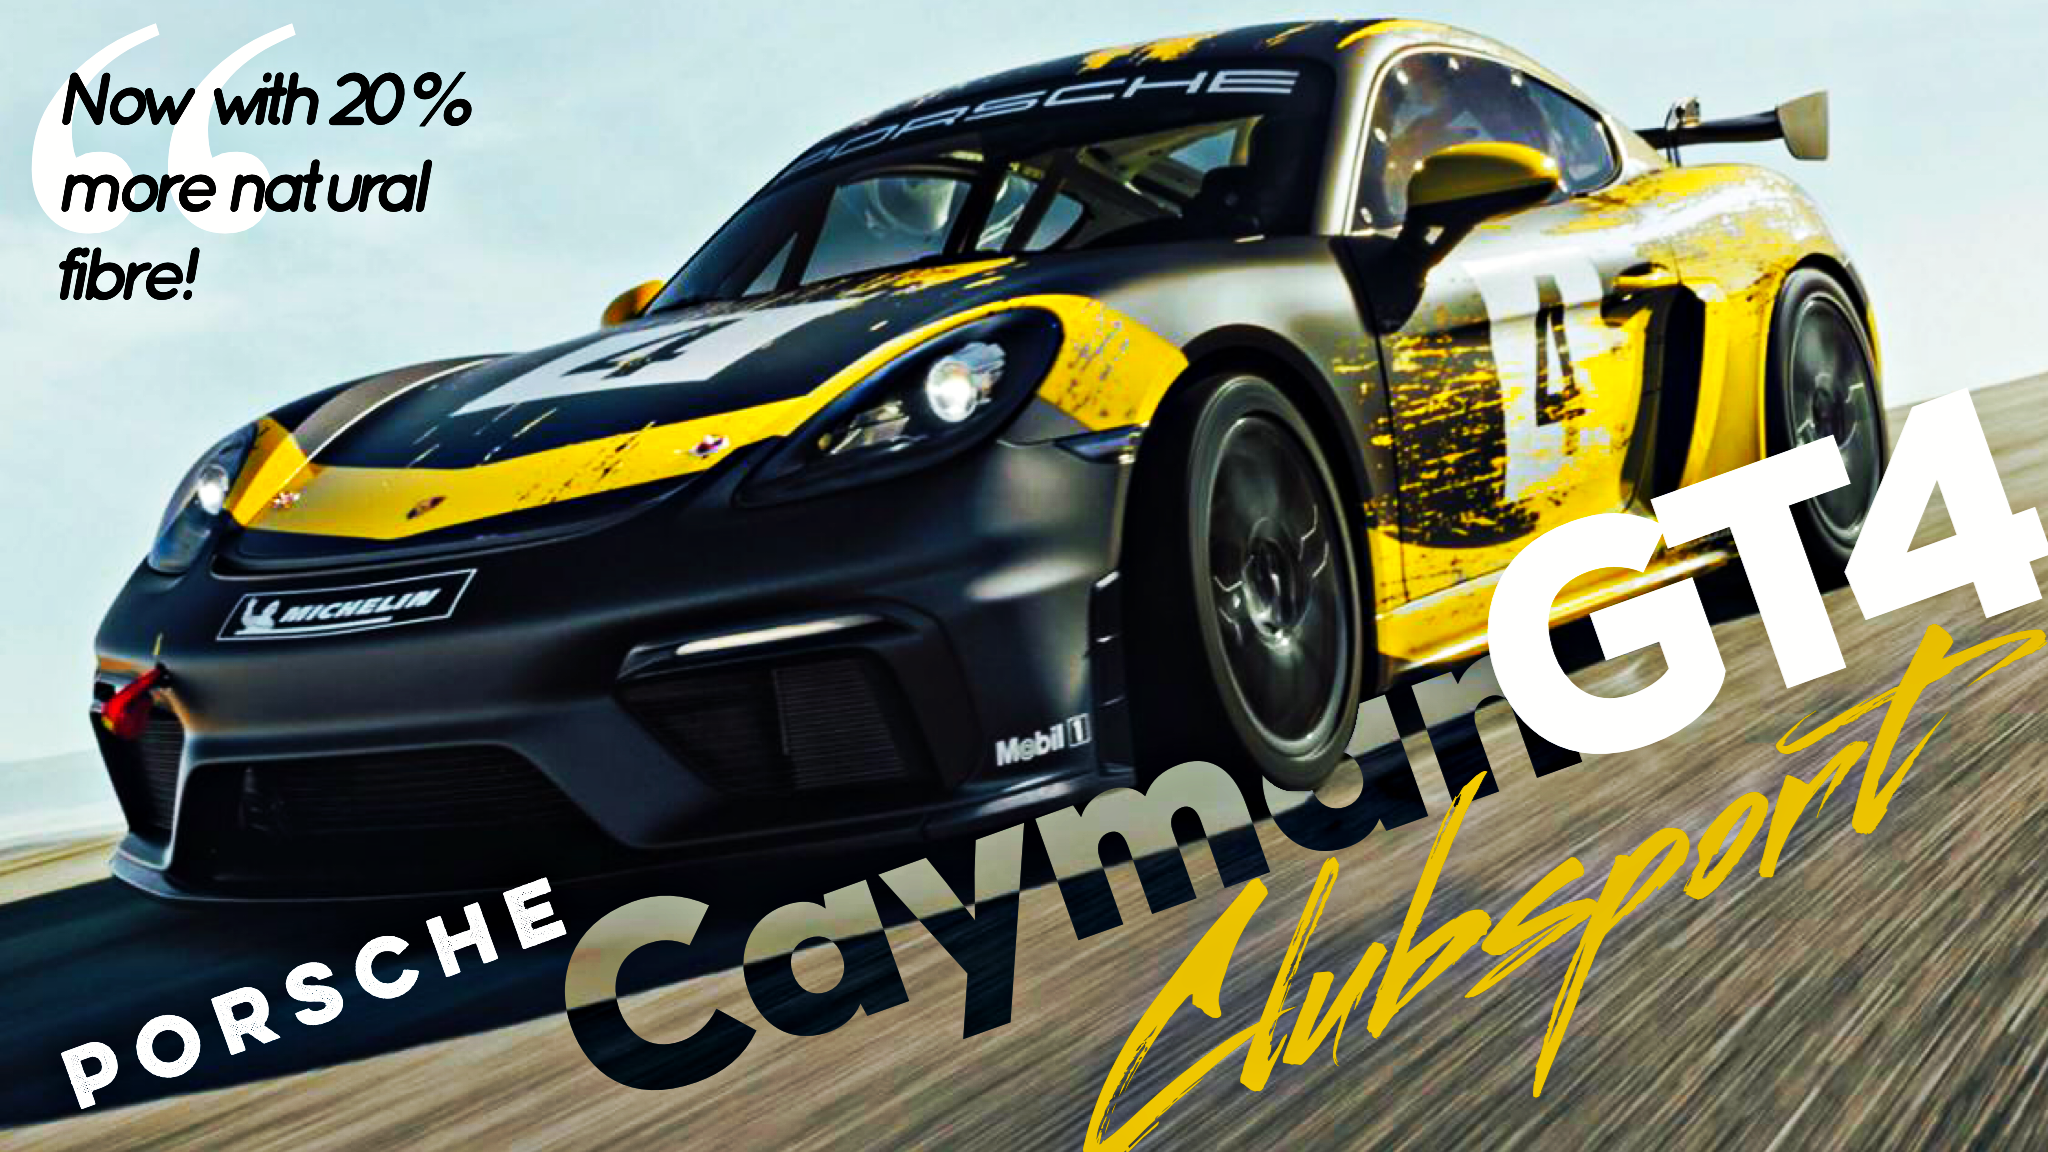 New Cayman GT4 Clubsport Returns Flat-6, Uses Natural-Fibre Panels